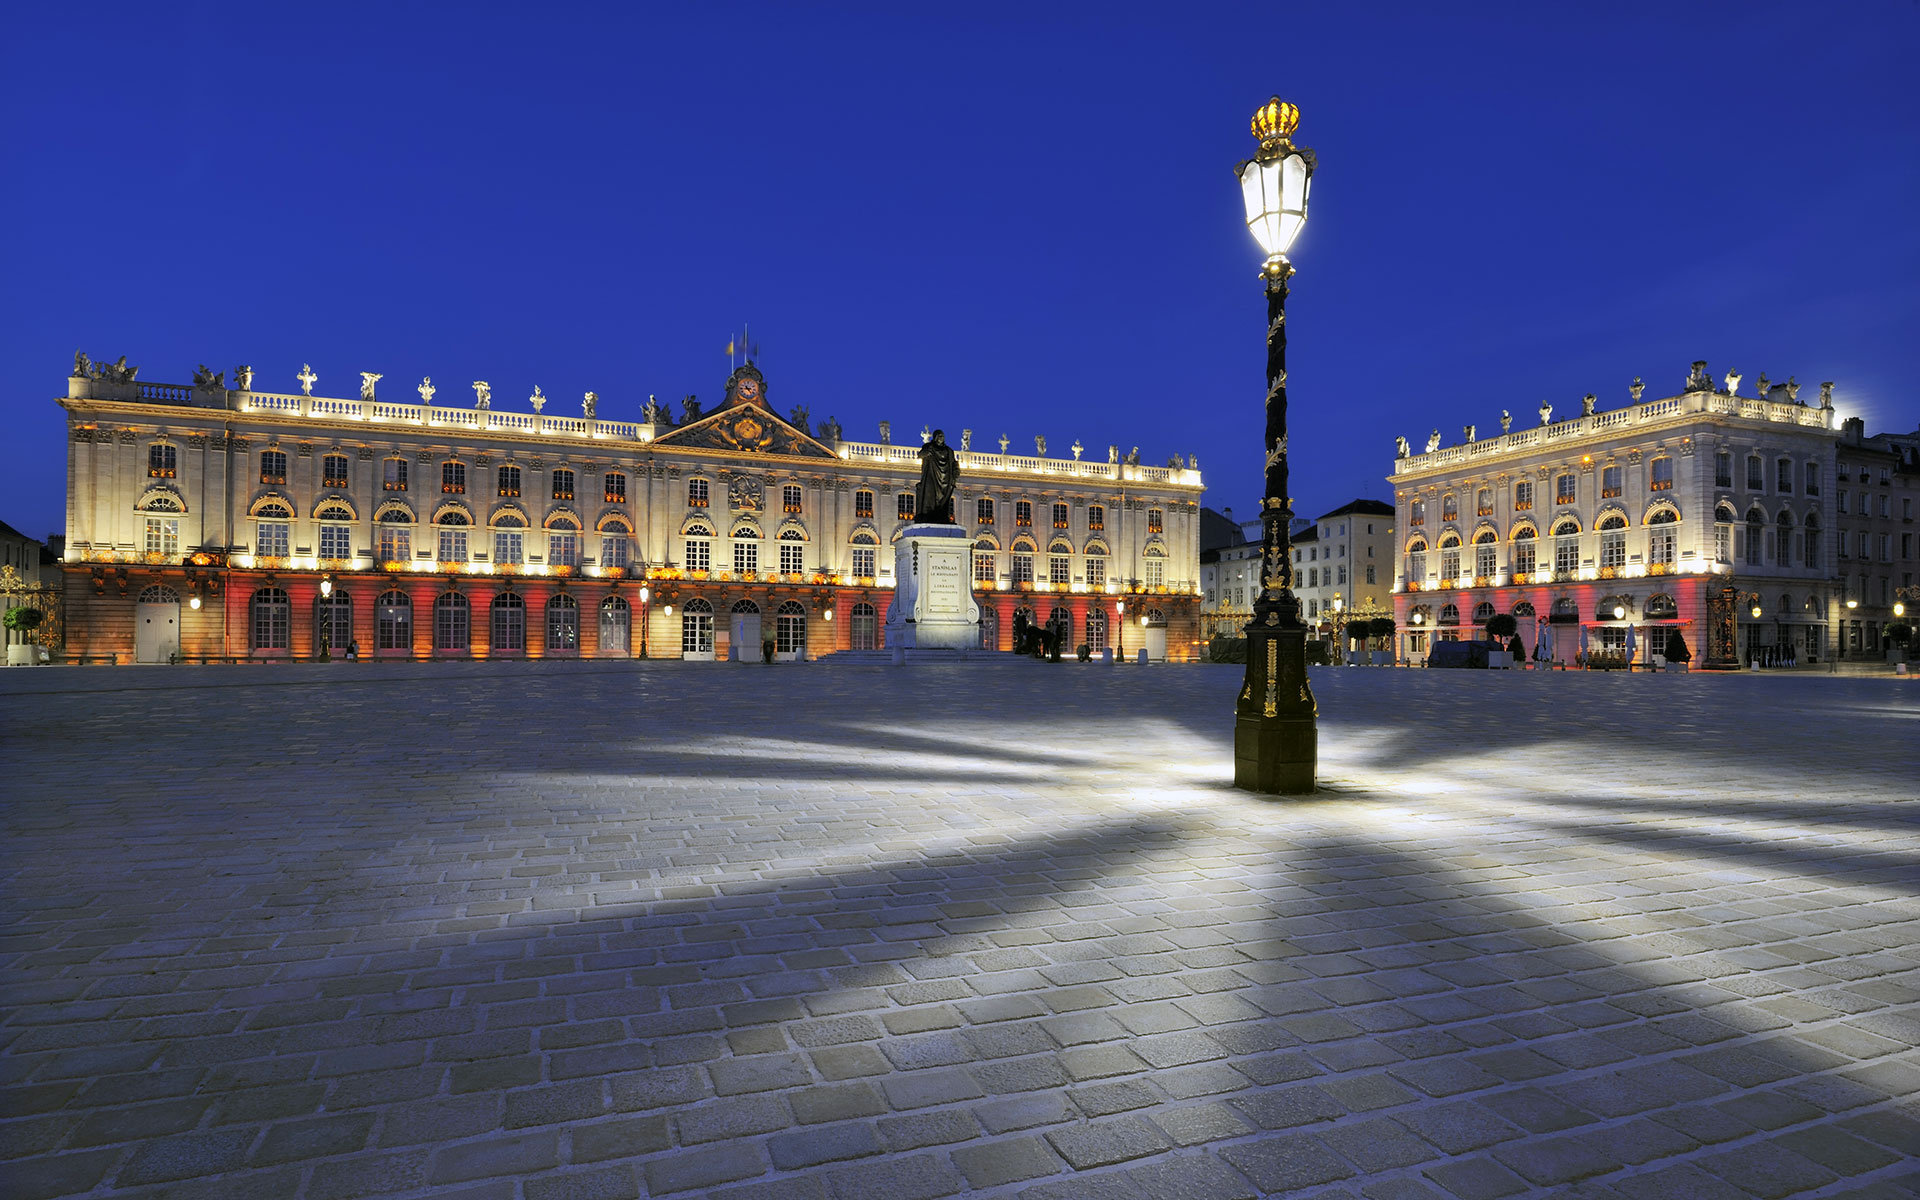 Place Stanislas in the middle of Nancy. The town will benefit from much better regional rail connections with the revamp of timetables in April 2016 (photo © Worldfoto / dreamstime).